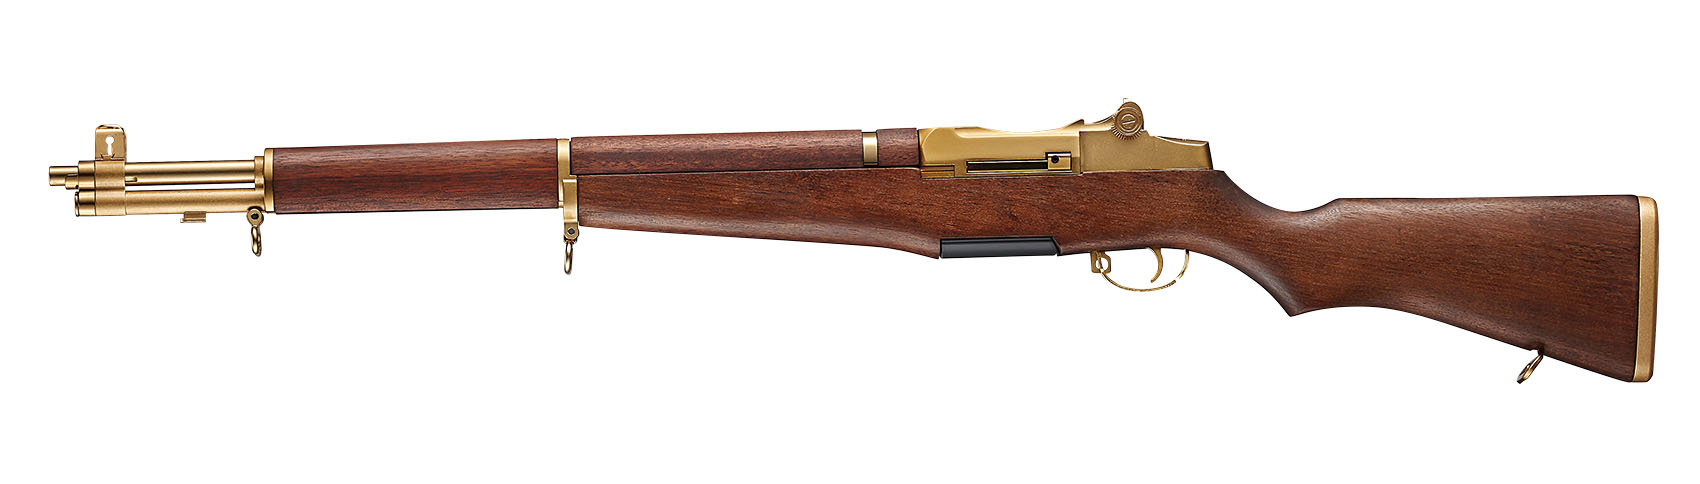 ICS M1 Garand World War II AEG (70th Anniversary Limited) 8mm